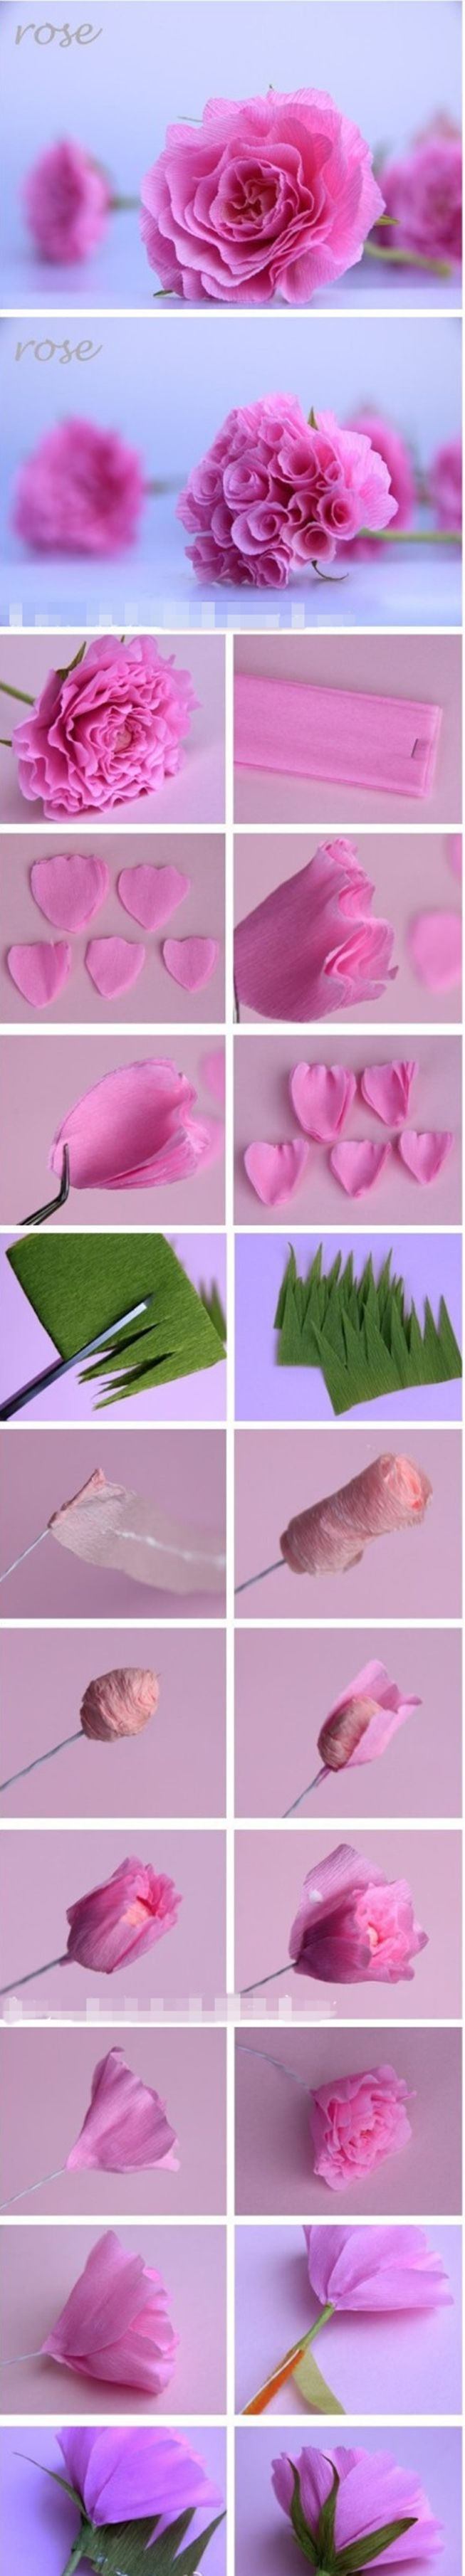 27 best handmade flowers images on pinterest diy crafts and flowers how to make paper flowers using origami the art of paper folding fun paper diy on mightylinksfo Image collections